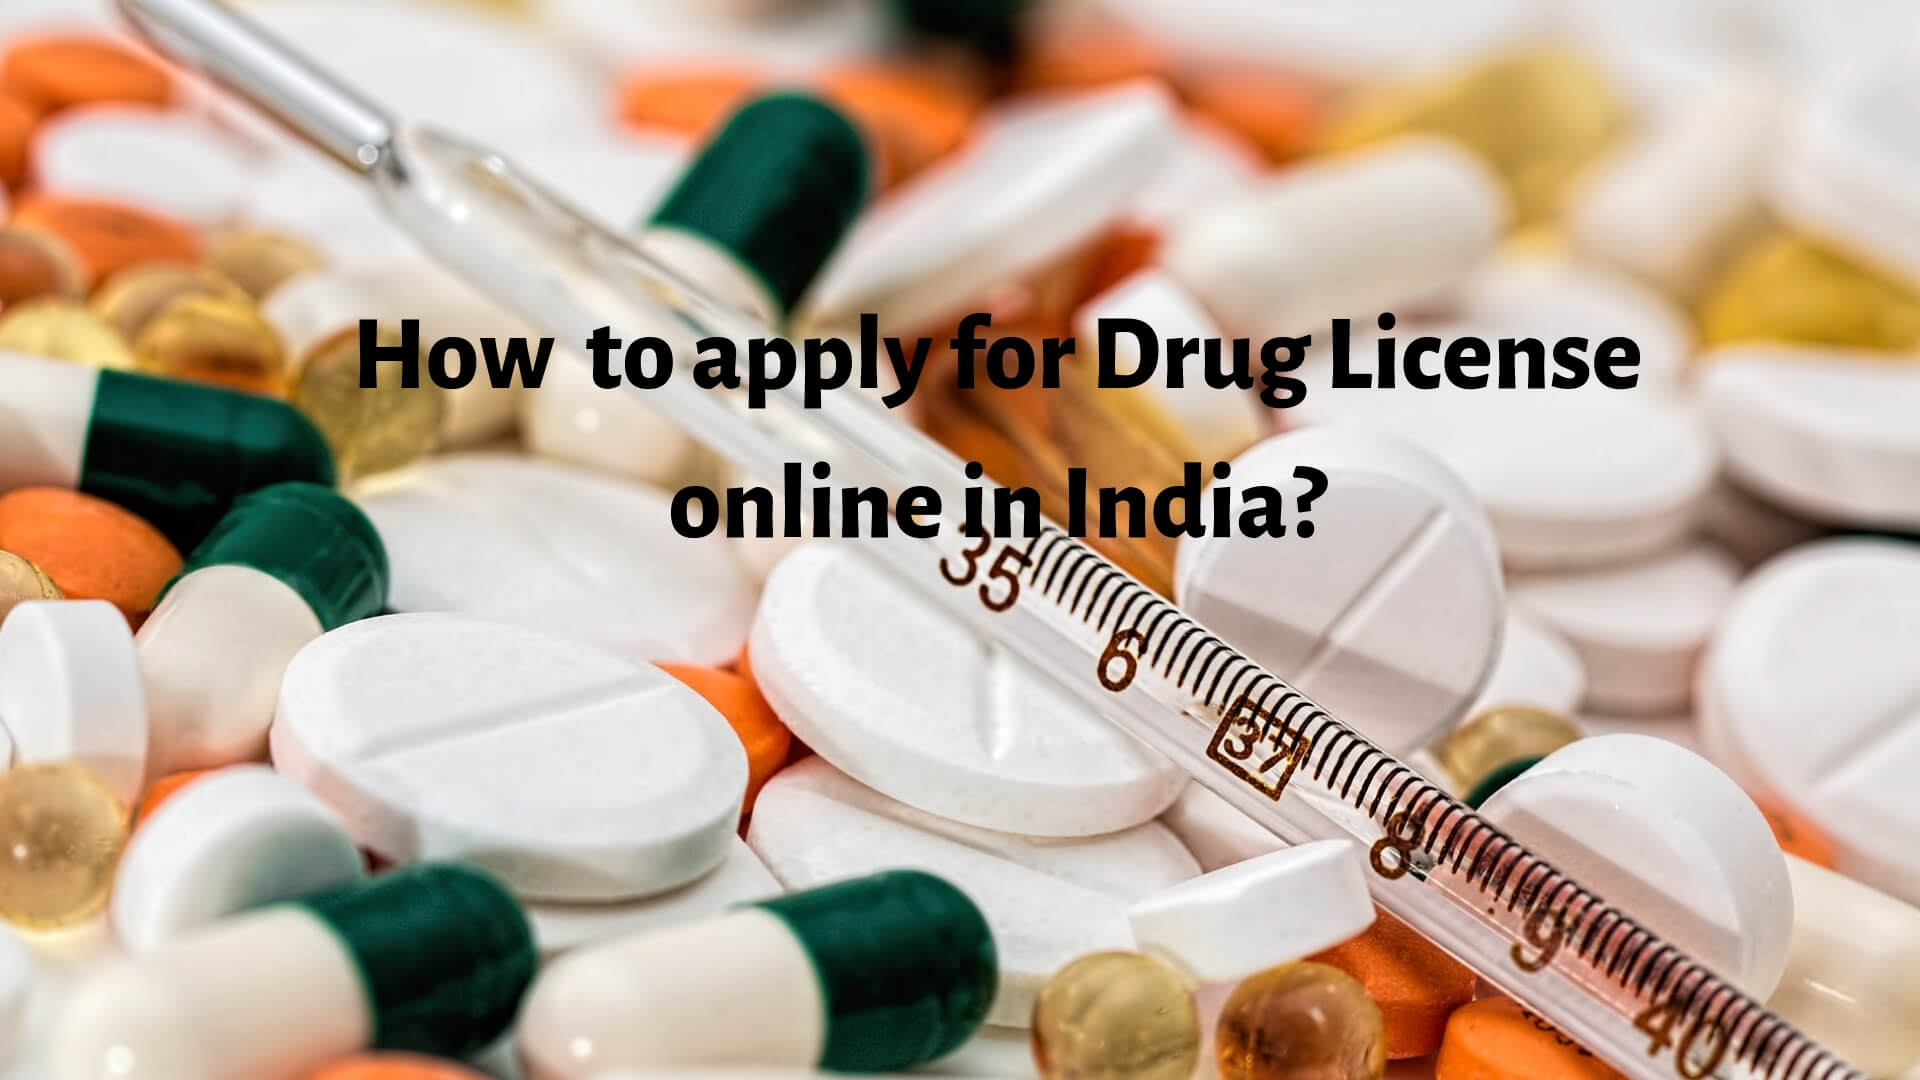 How to apply for Drug License online in India